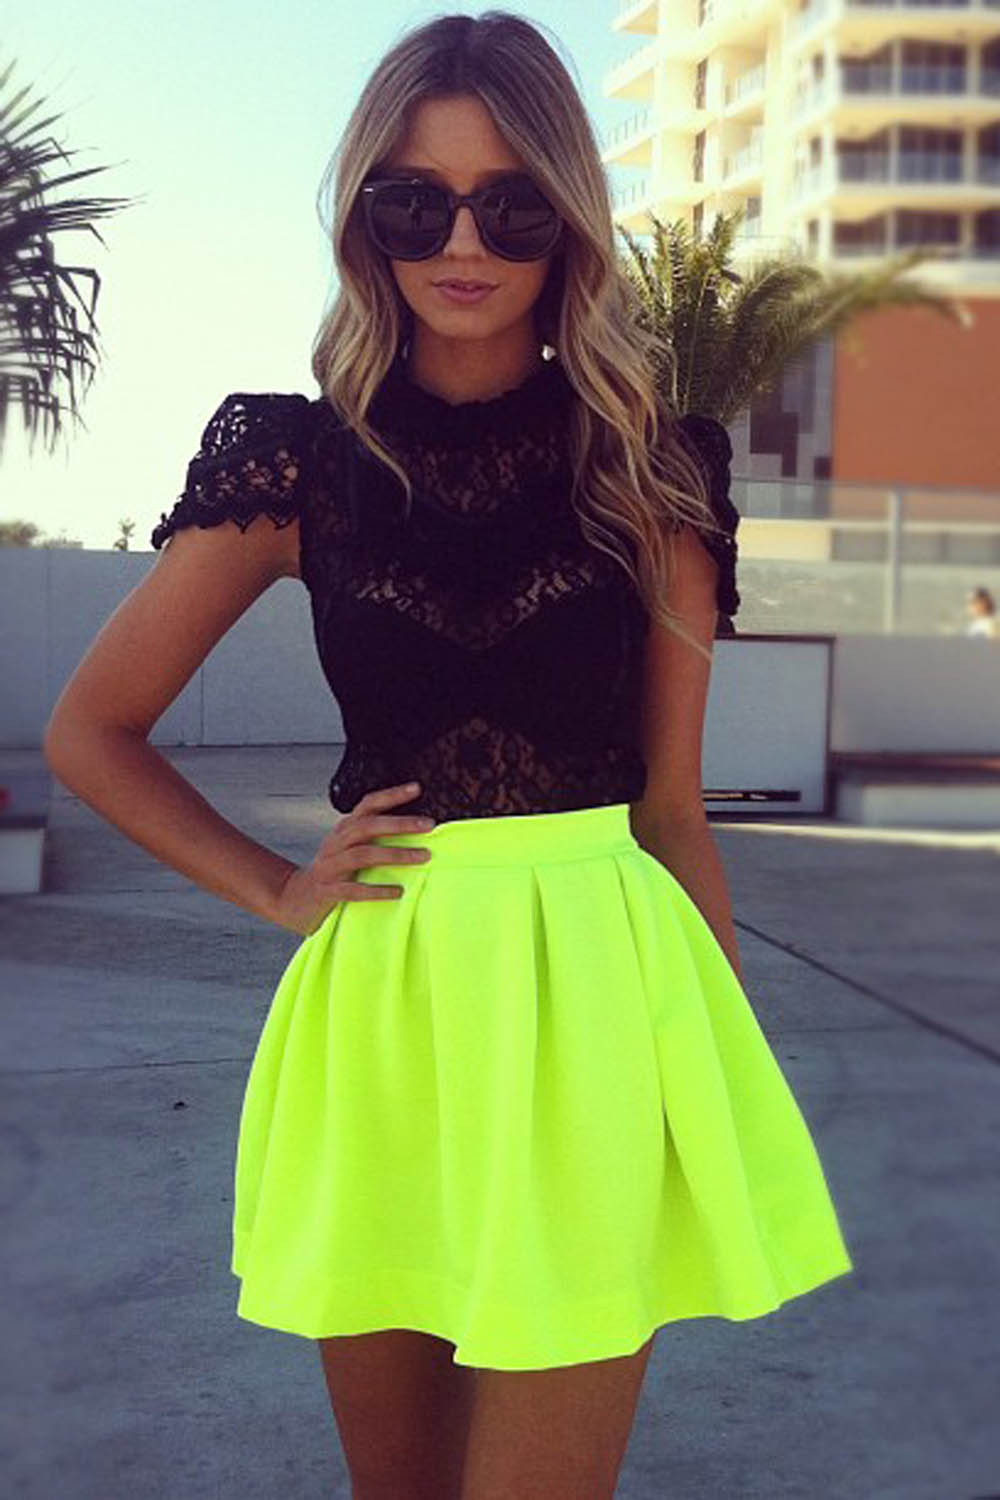 SABO SKIRT  Neon Tulip Skirt - (No Colour Specified) - 48.0000